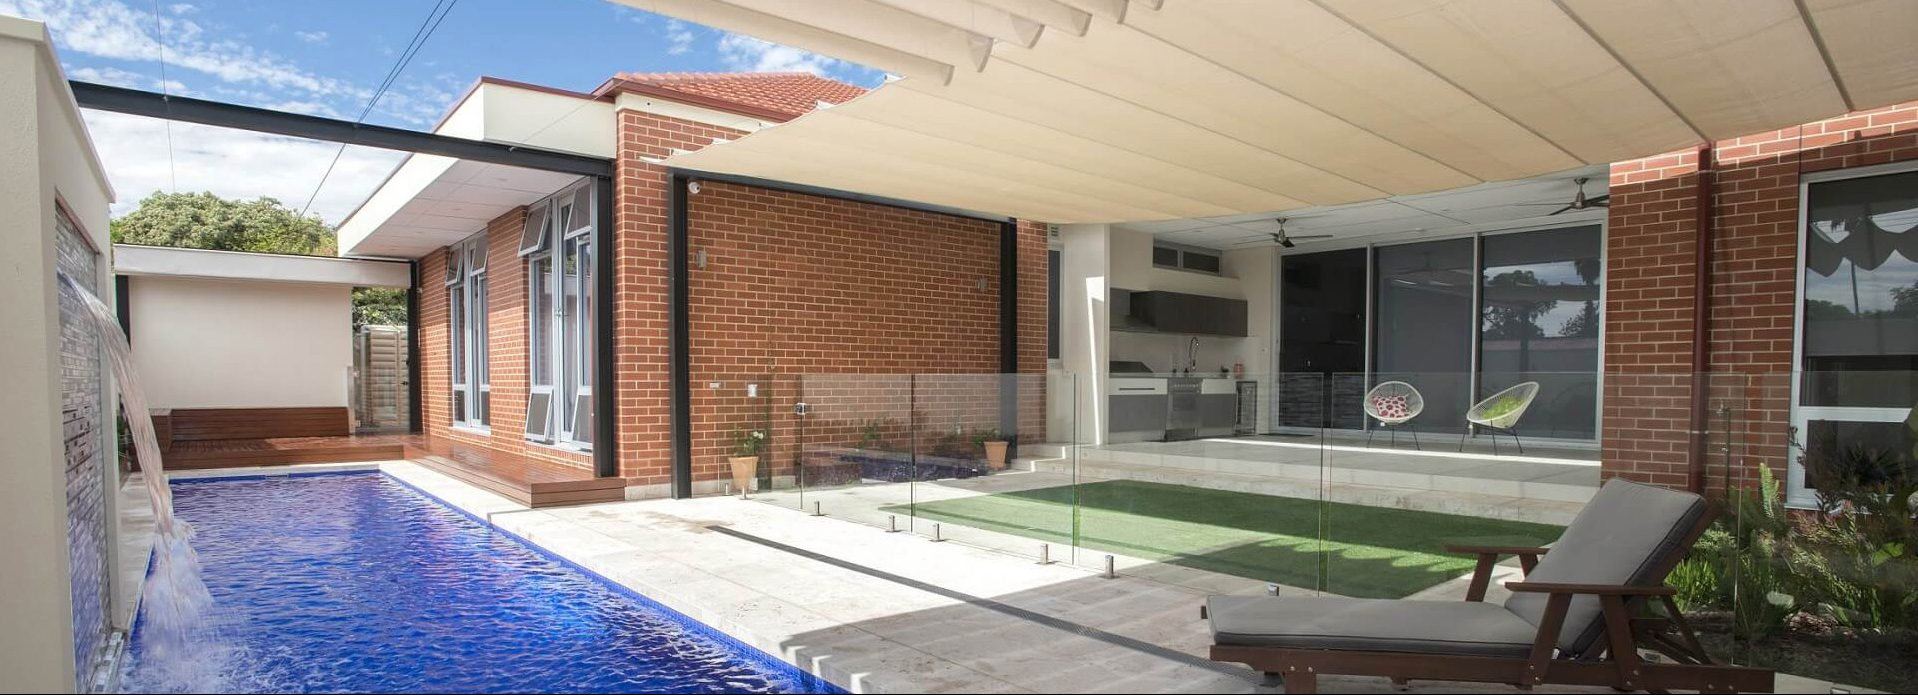 How To Best Shade Your Pool Summer 2020 2021 Shadeform Blog